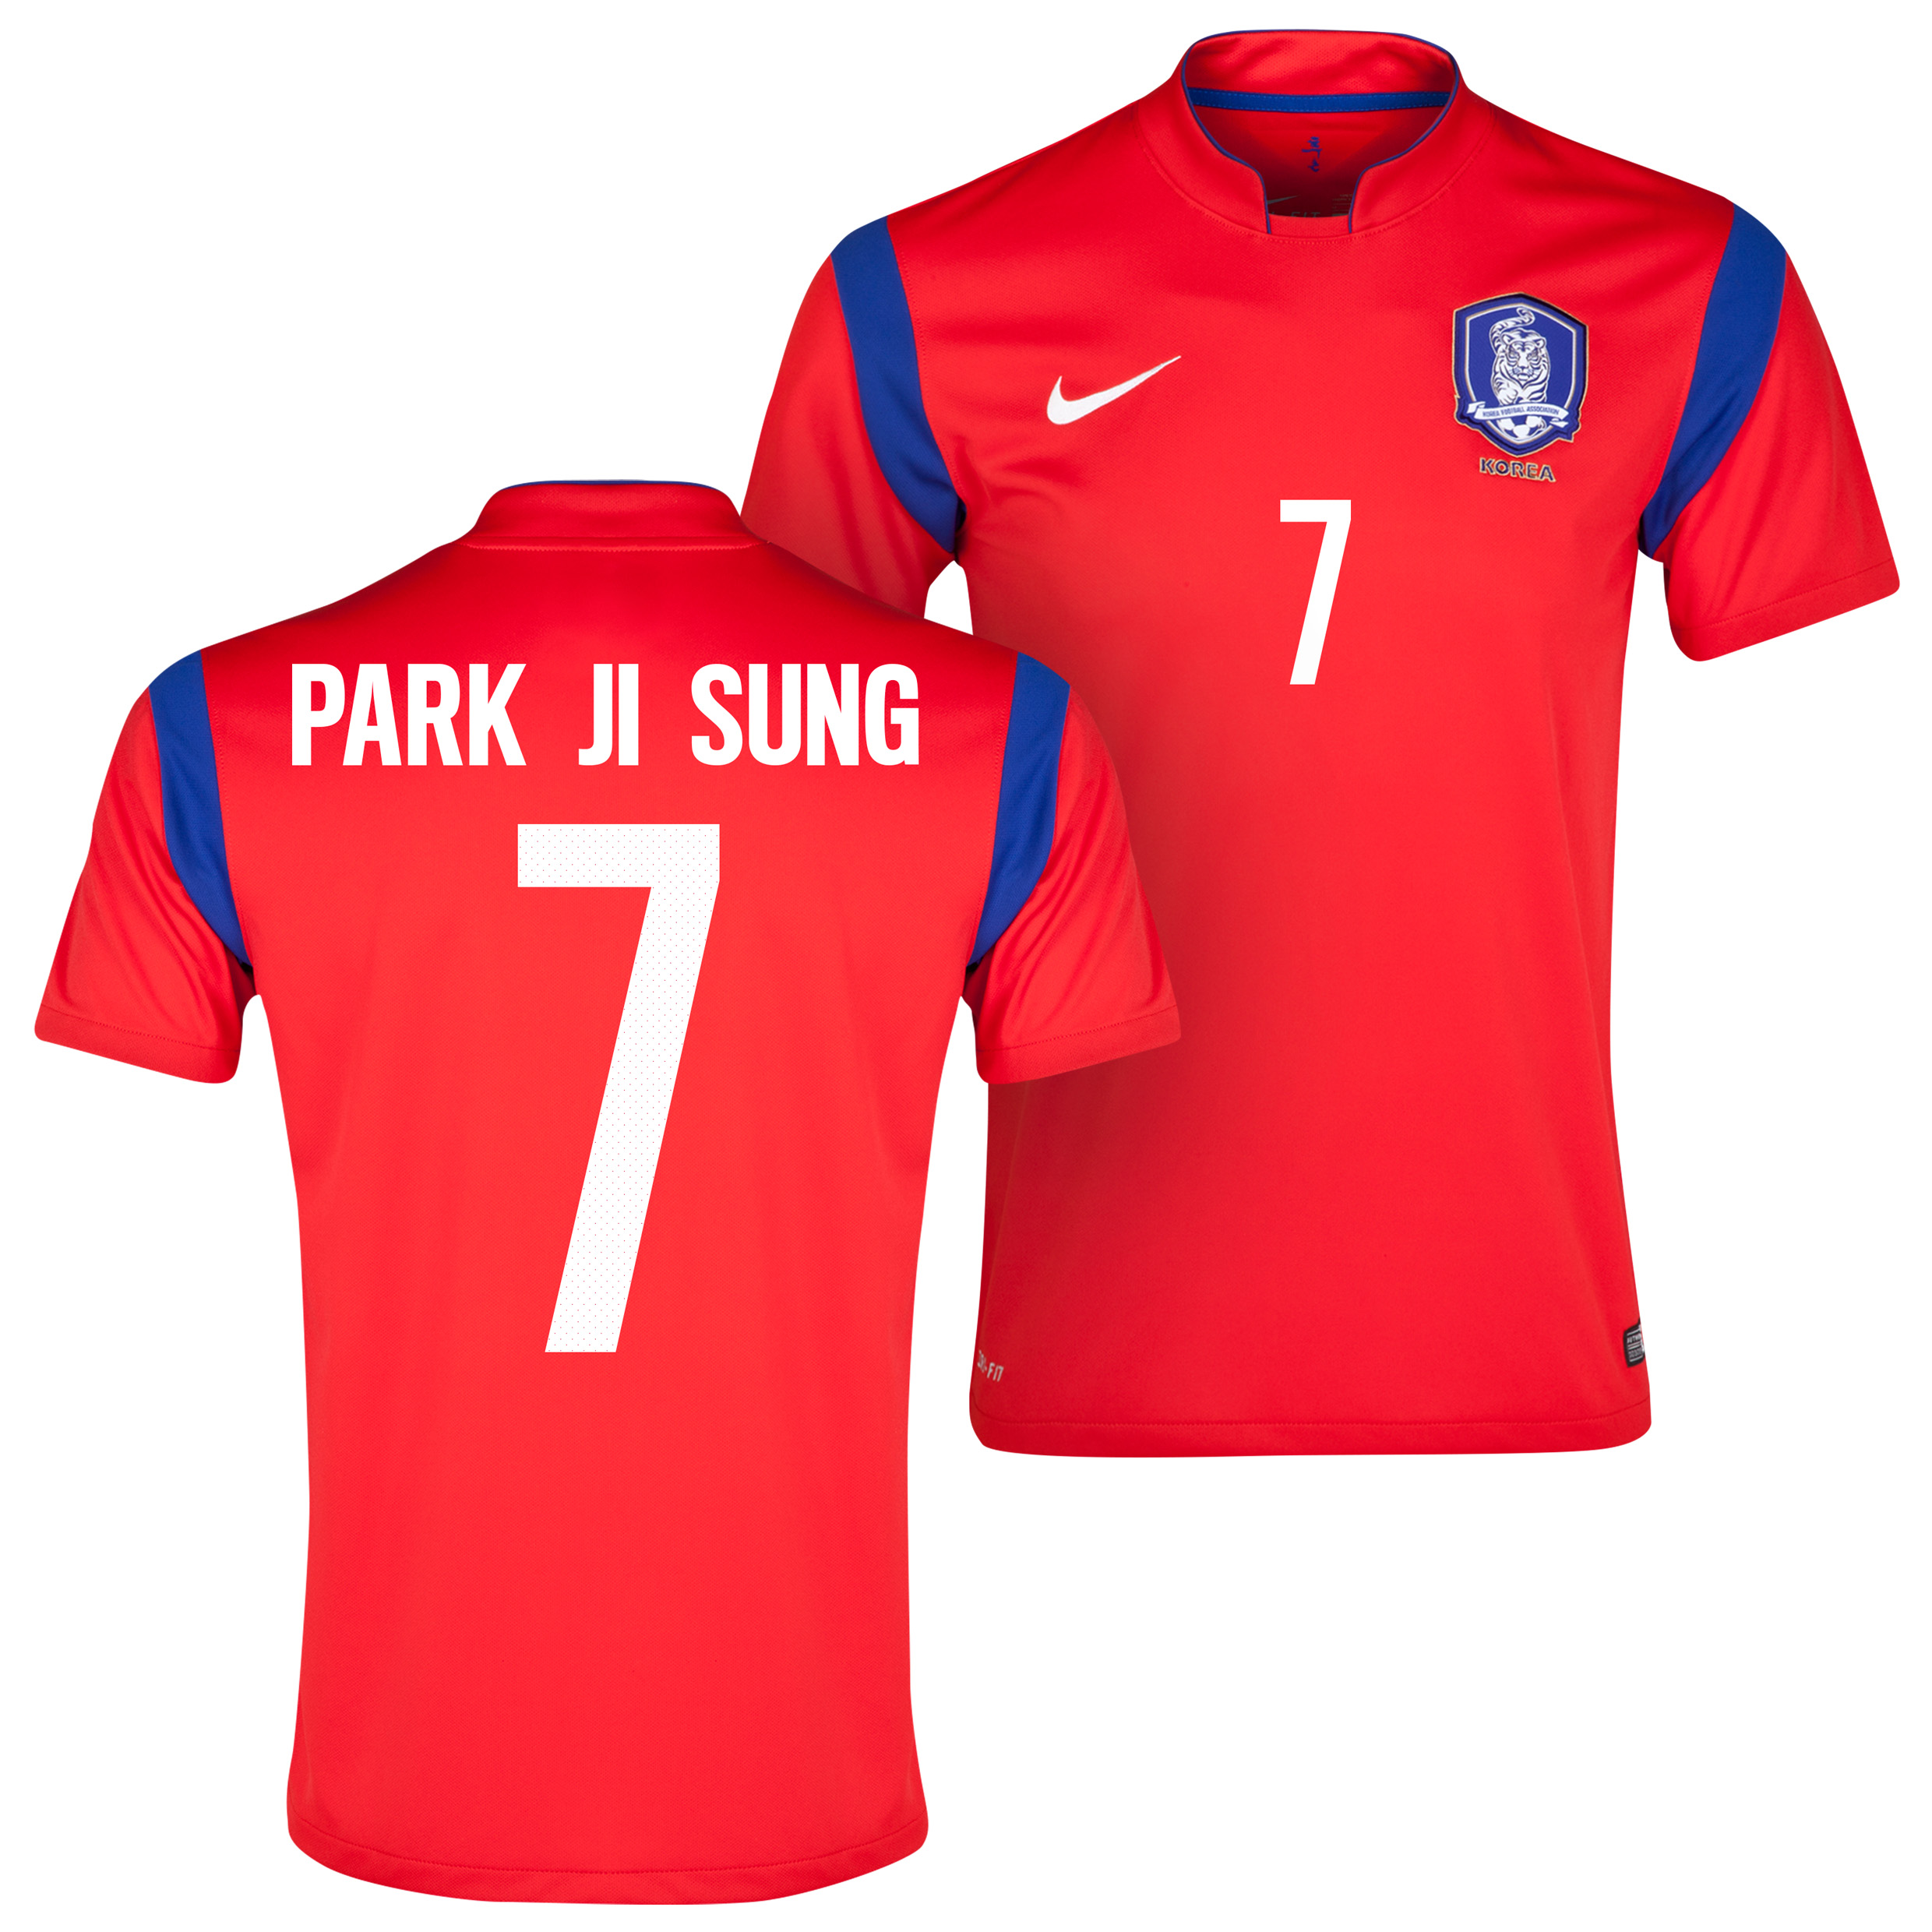 South Korea Home Shirt 2013/15 Red with Park Ji Sung 7 printing